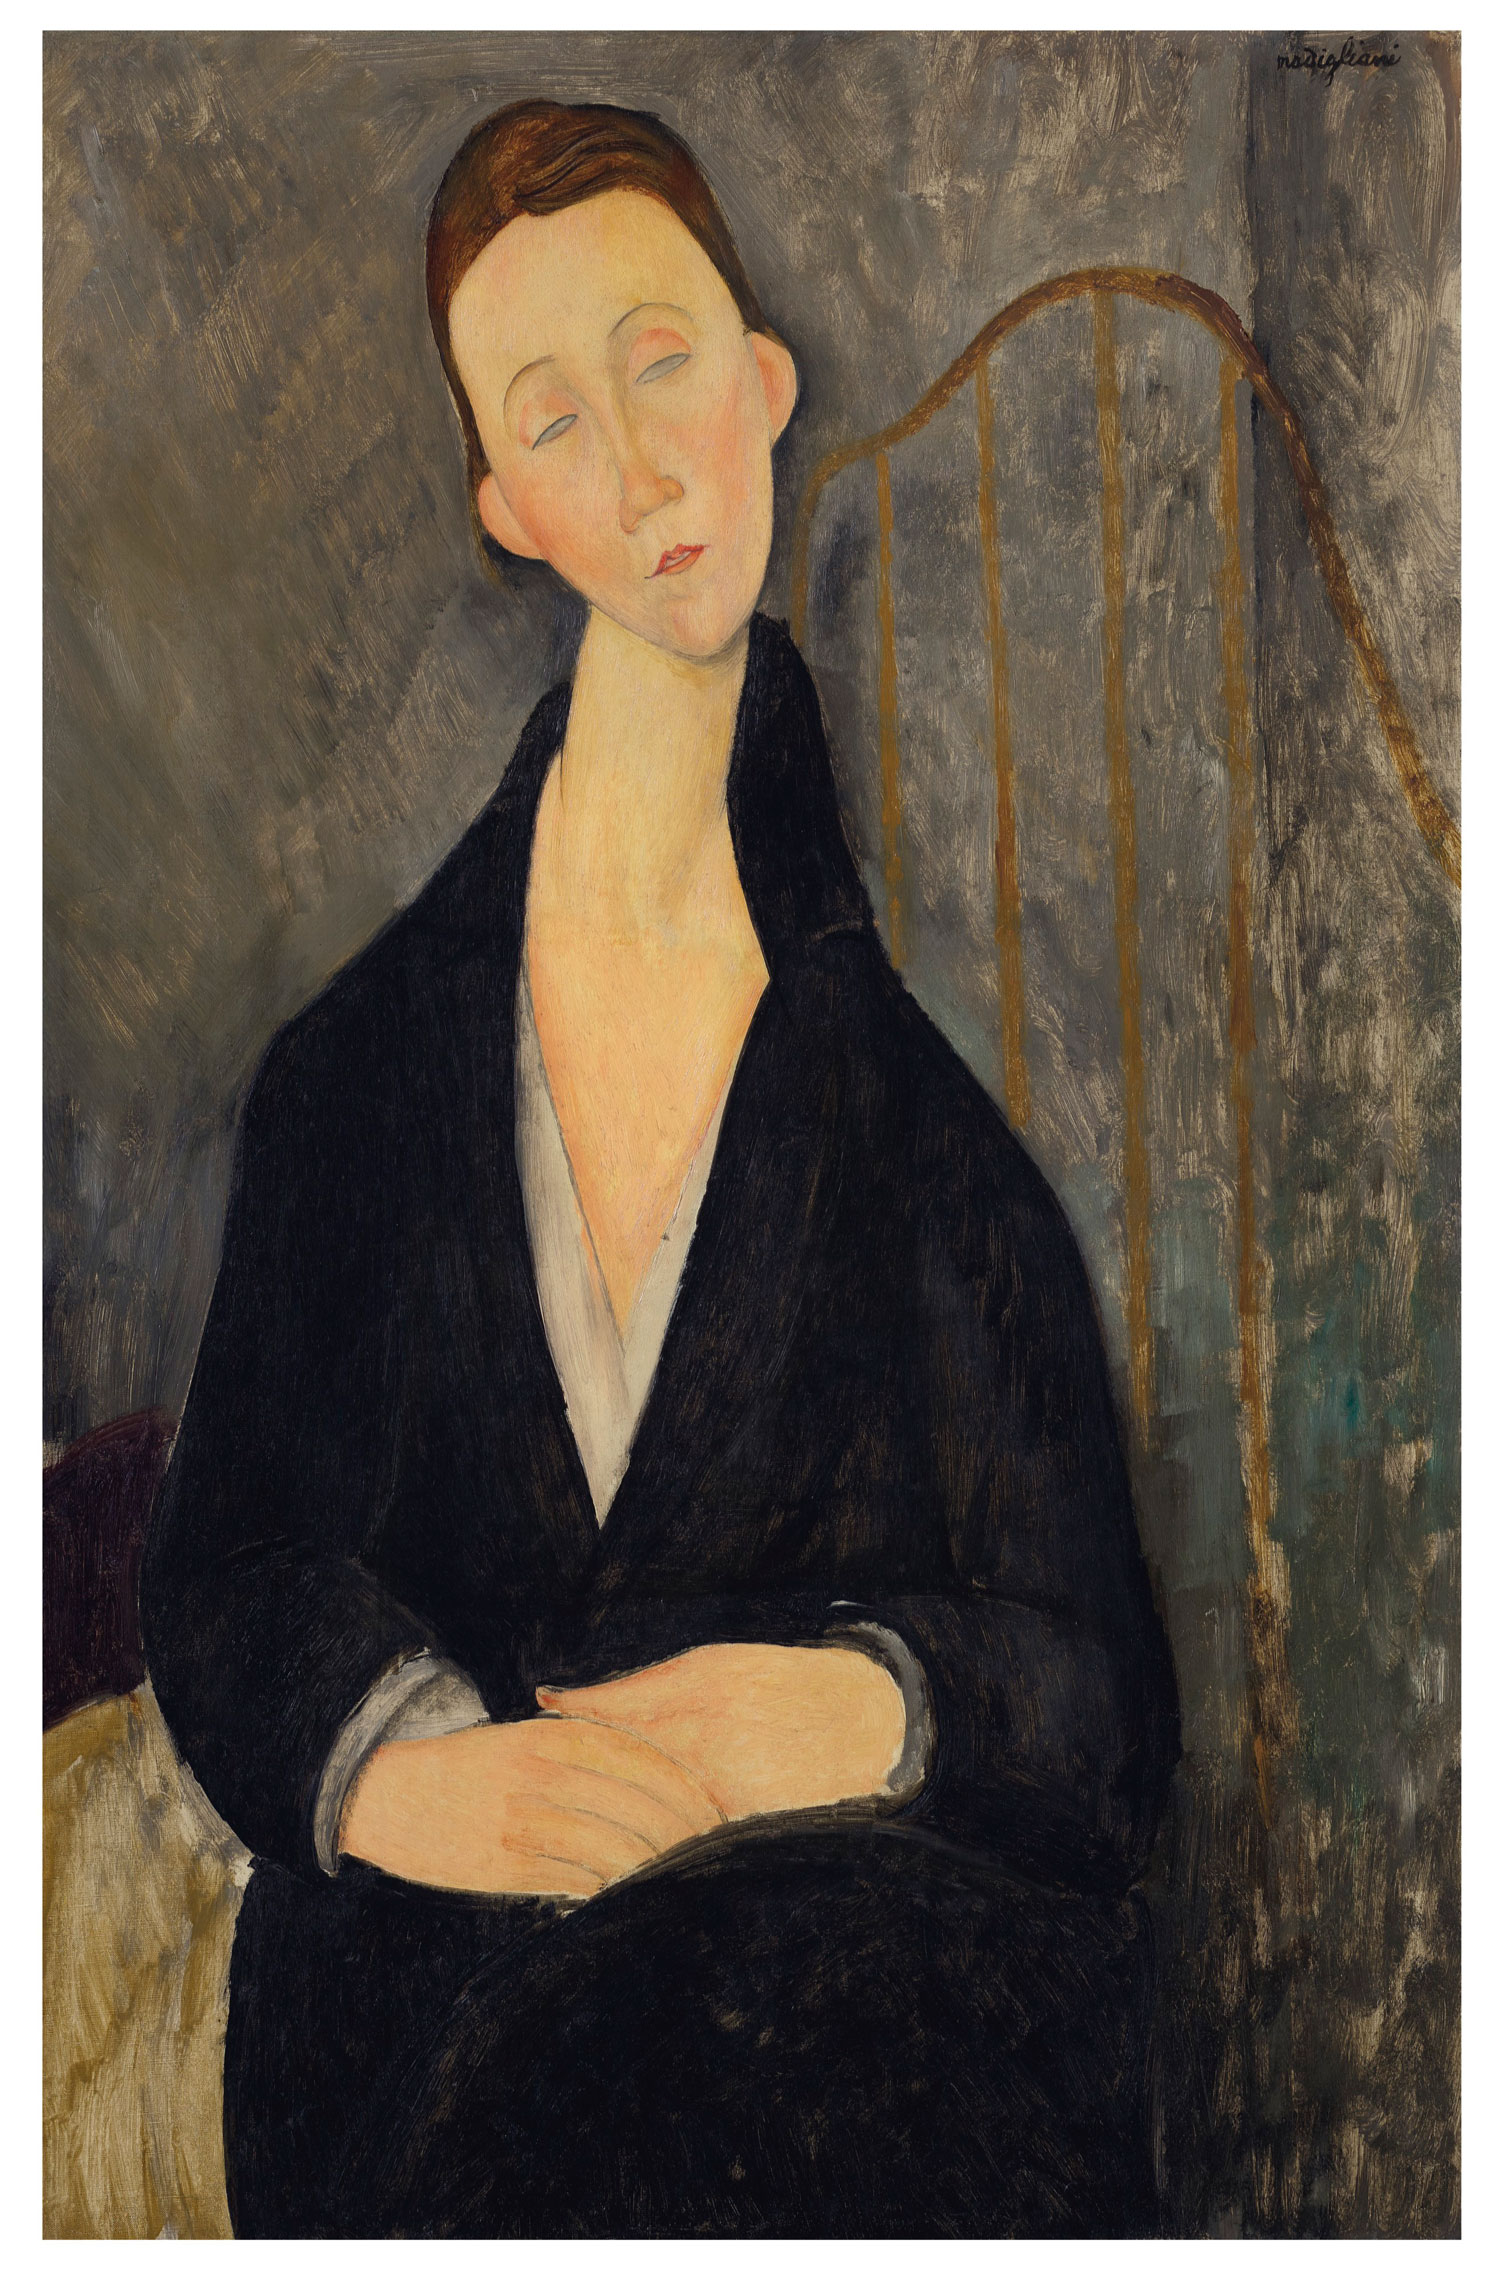 Amedeo Modigliani (1884-1920) Lunia Czechowska (à la robe noire), 1919. Oil on canvas. 36 ⅜ x 23 ⅝ in (92.4 x 60 cm). Estimate $12,000,000-18,000,000. This work is offered in the Impressionist & Modern Art Evening Sale on 13 May at Christie's in New York. The Collection of Drue Heinz